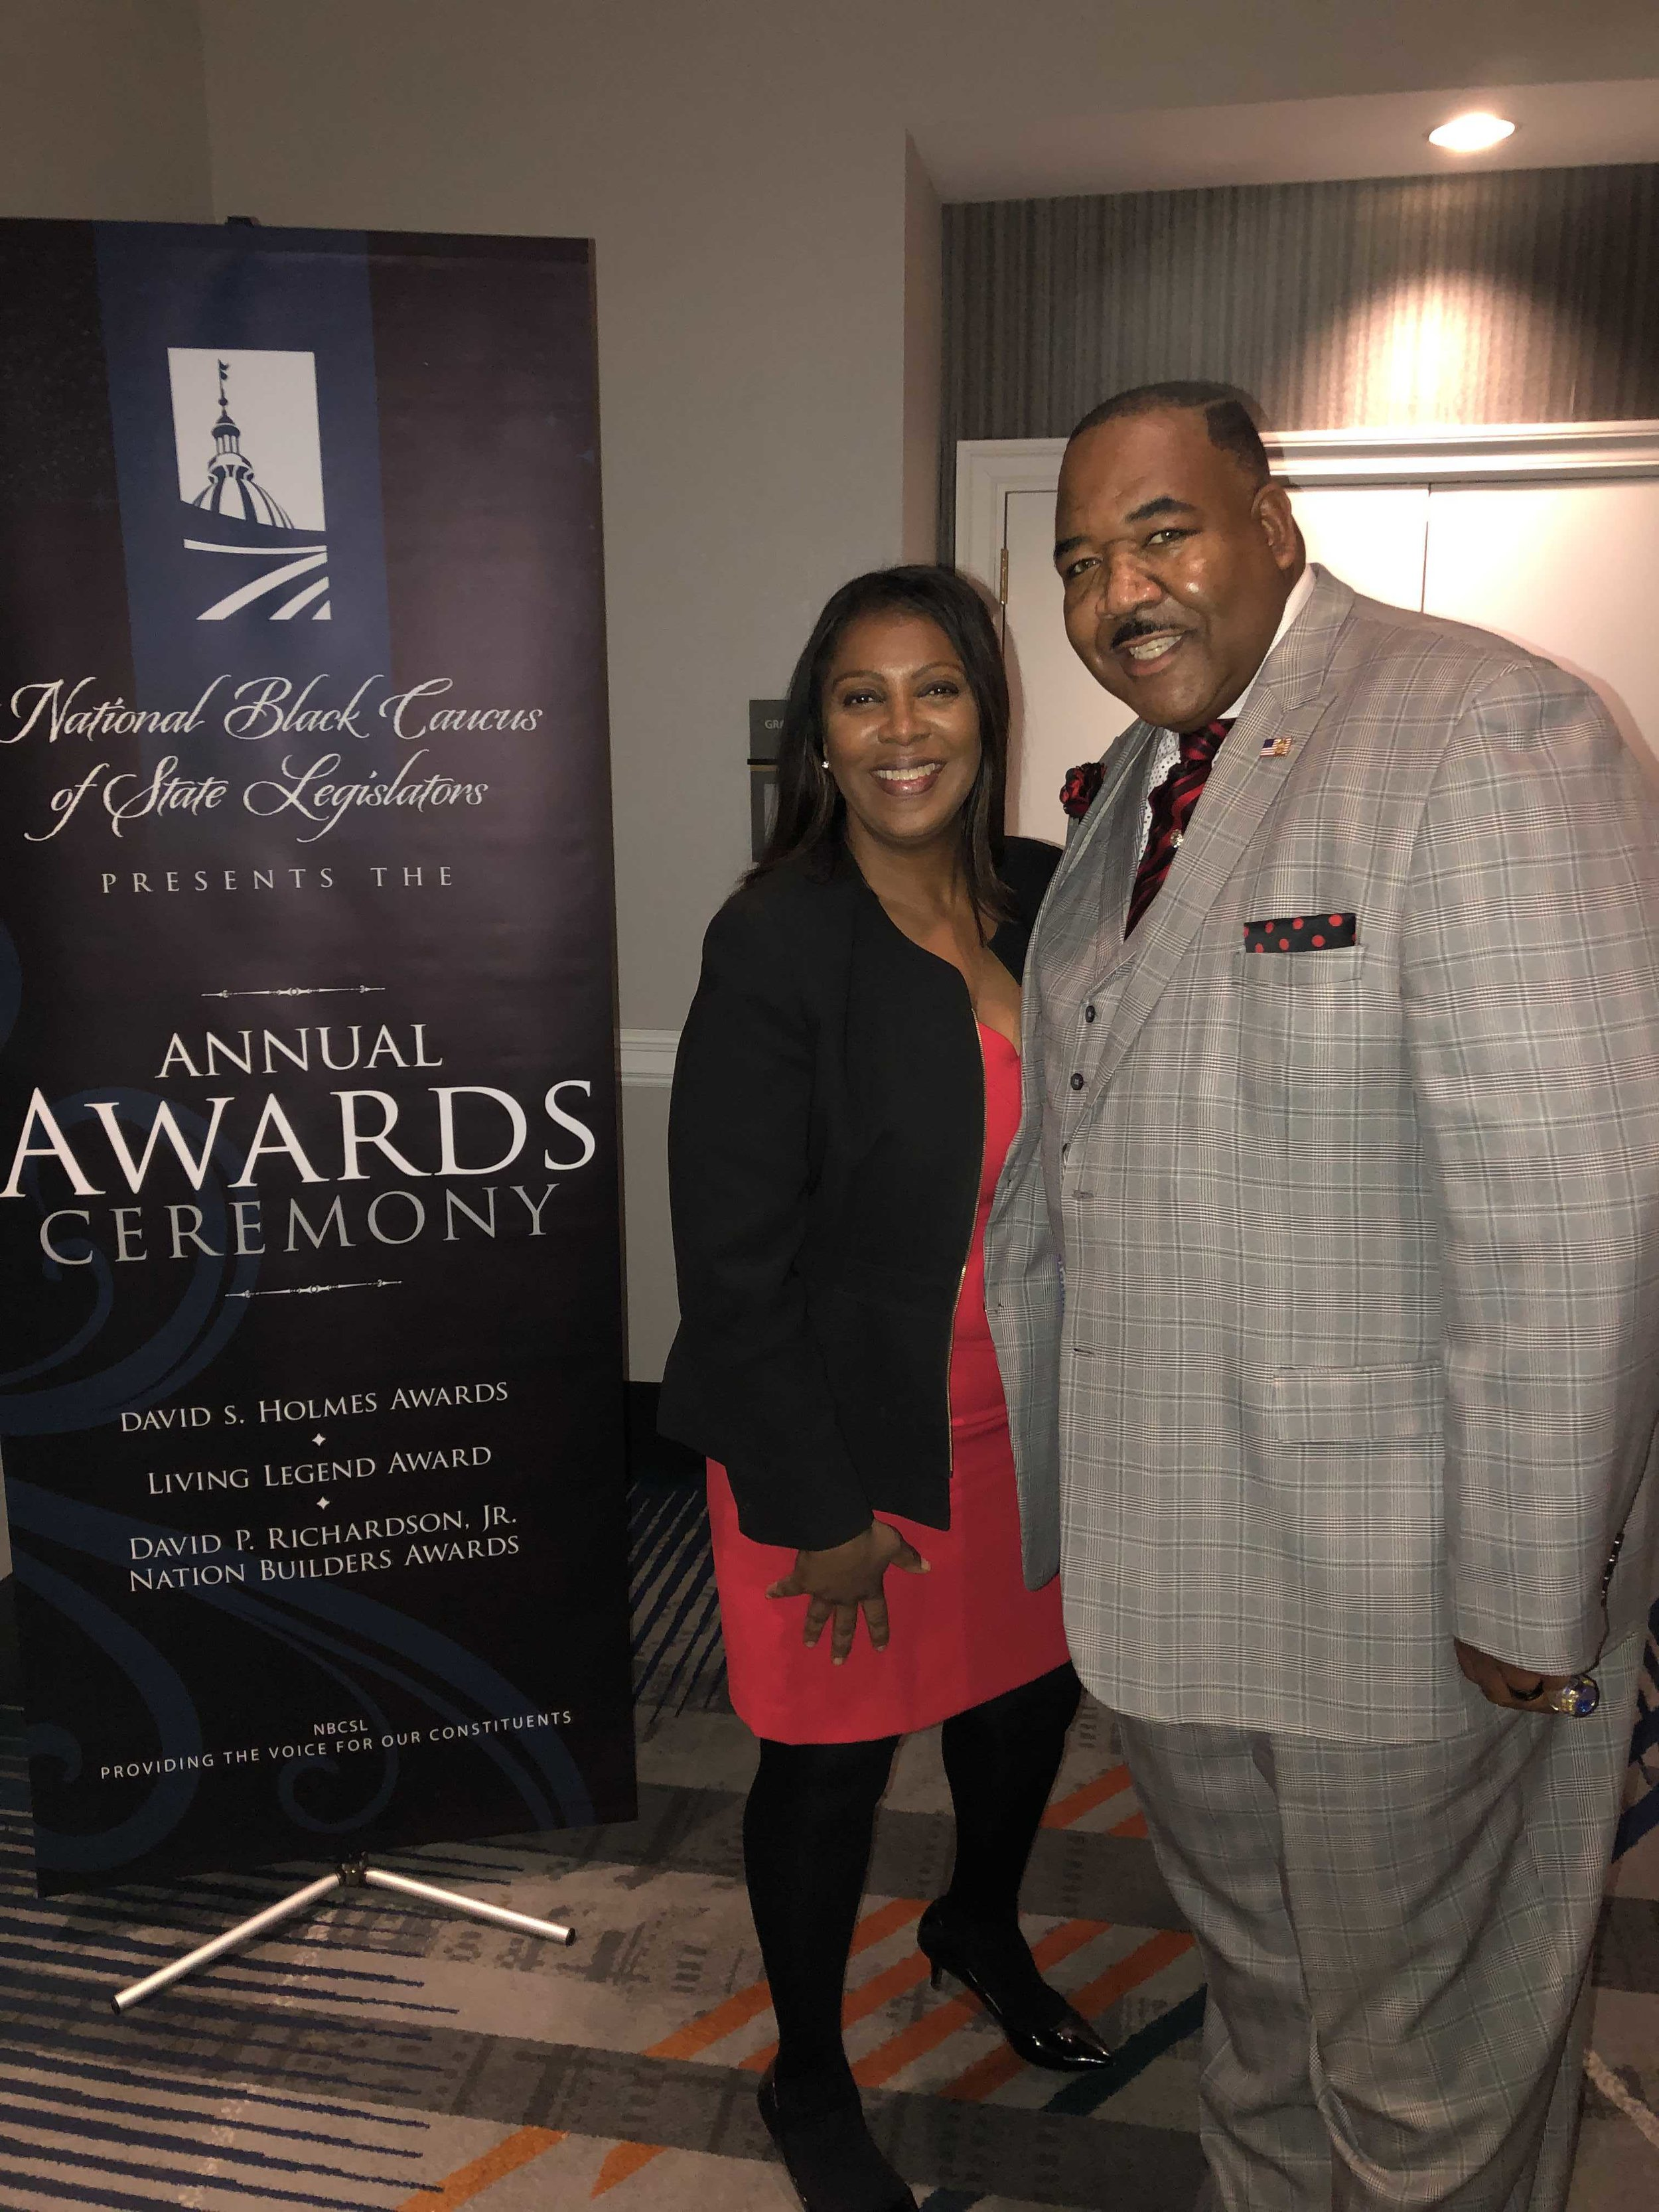 John with New York Attorney General Letitia James